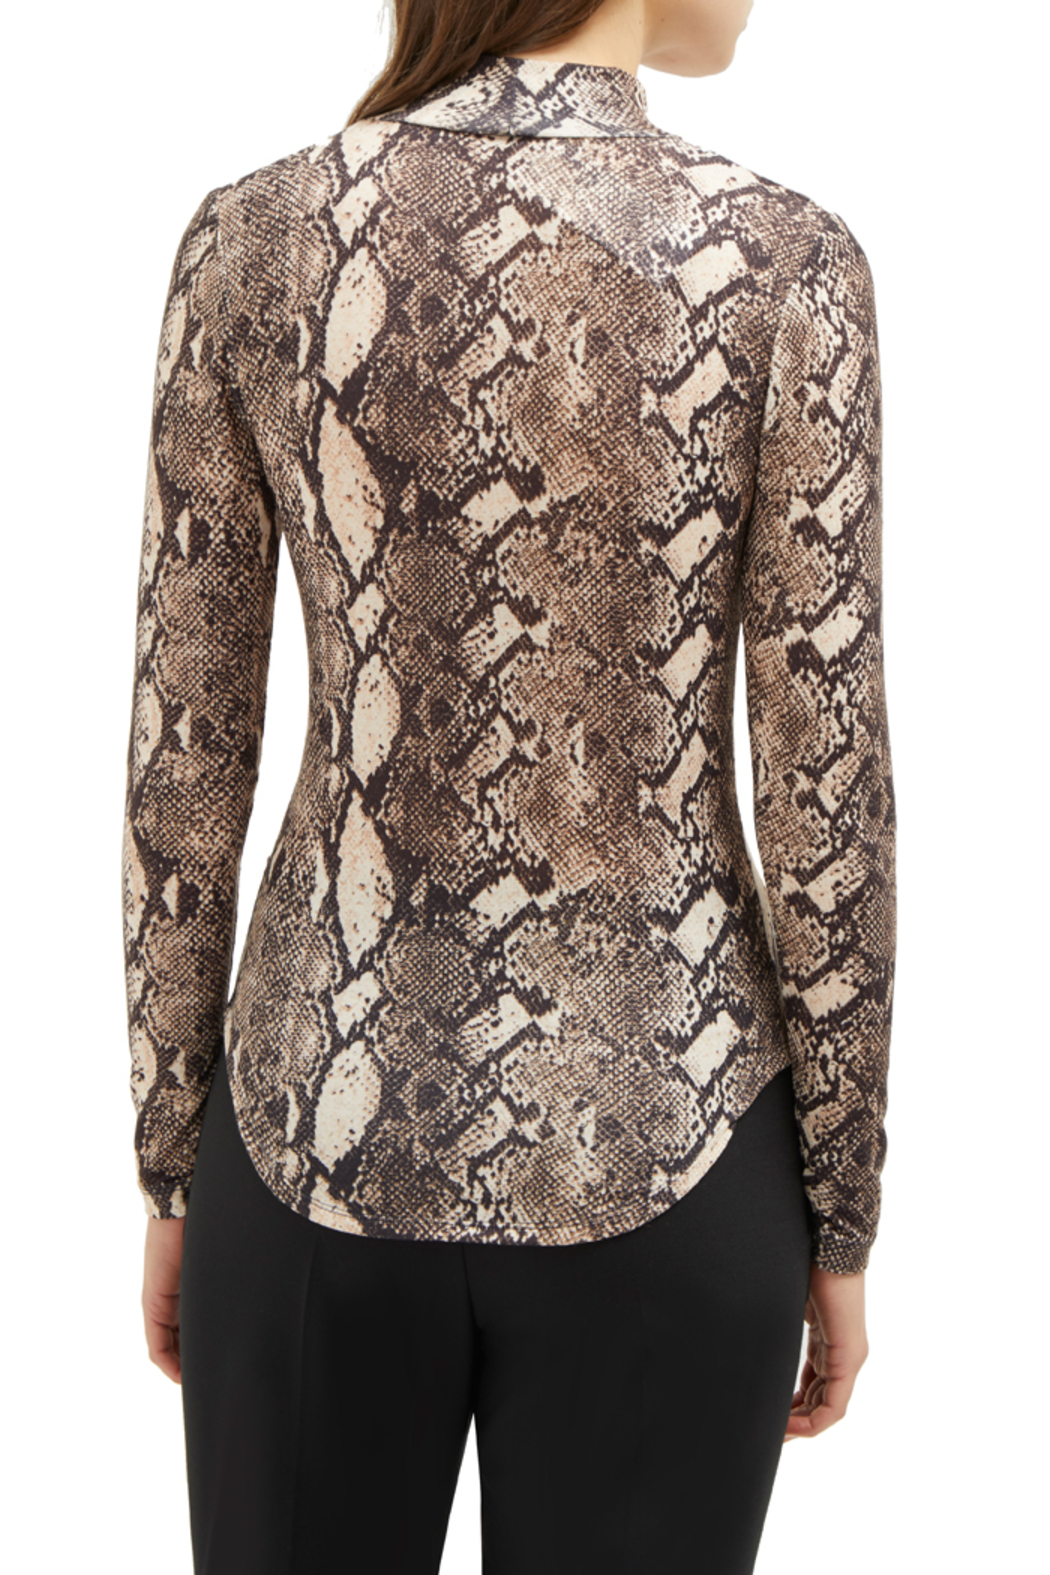 French Connection SNAKE PRINT HIGH NECK TOP - Side Cropped Image